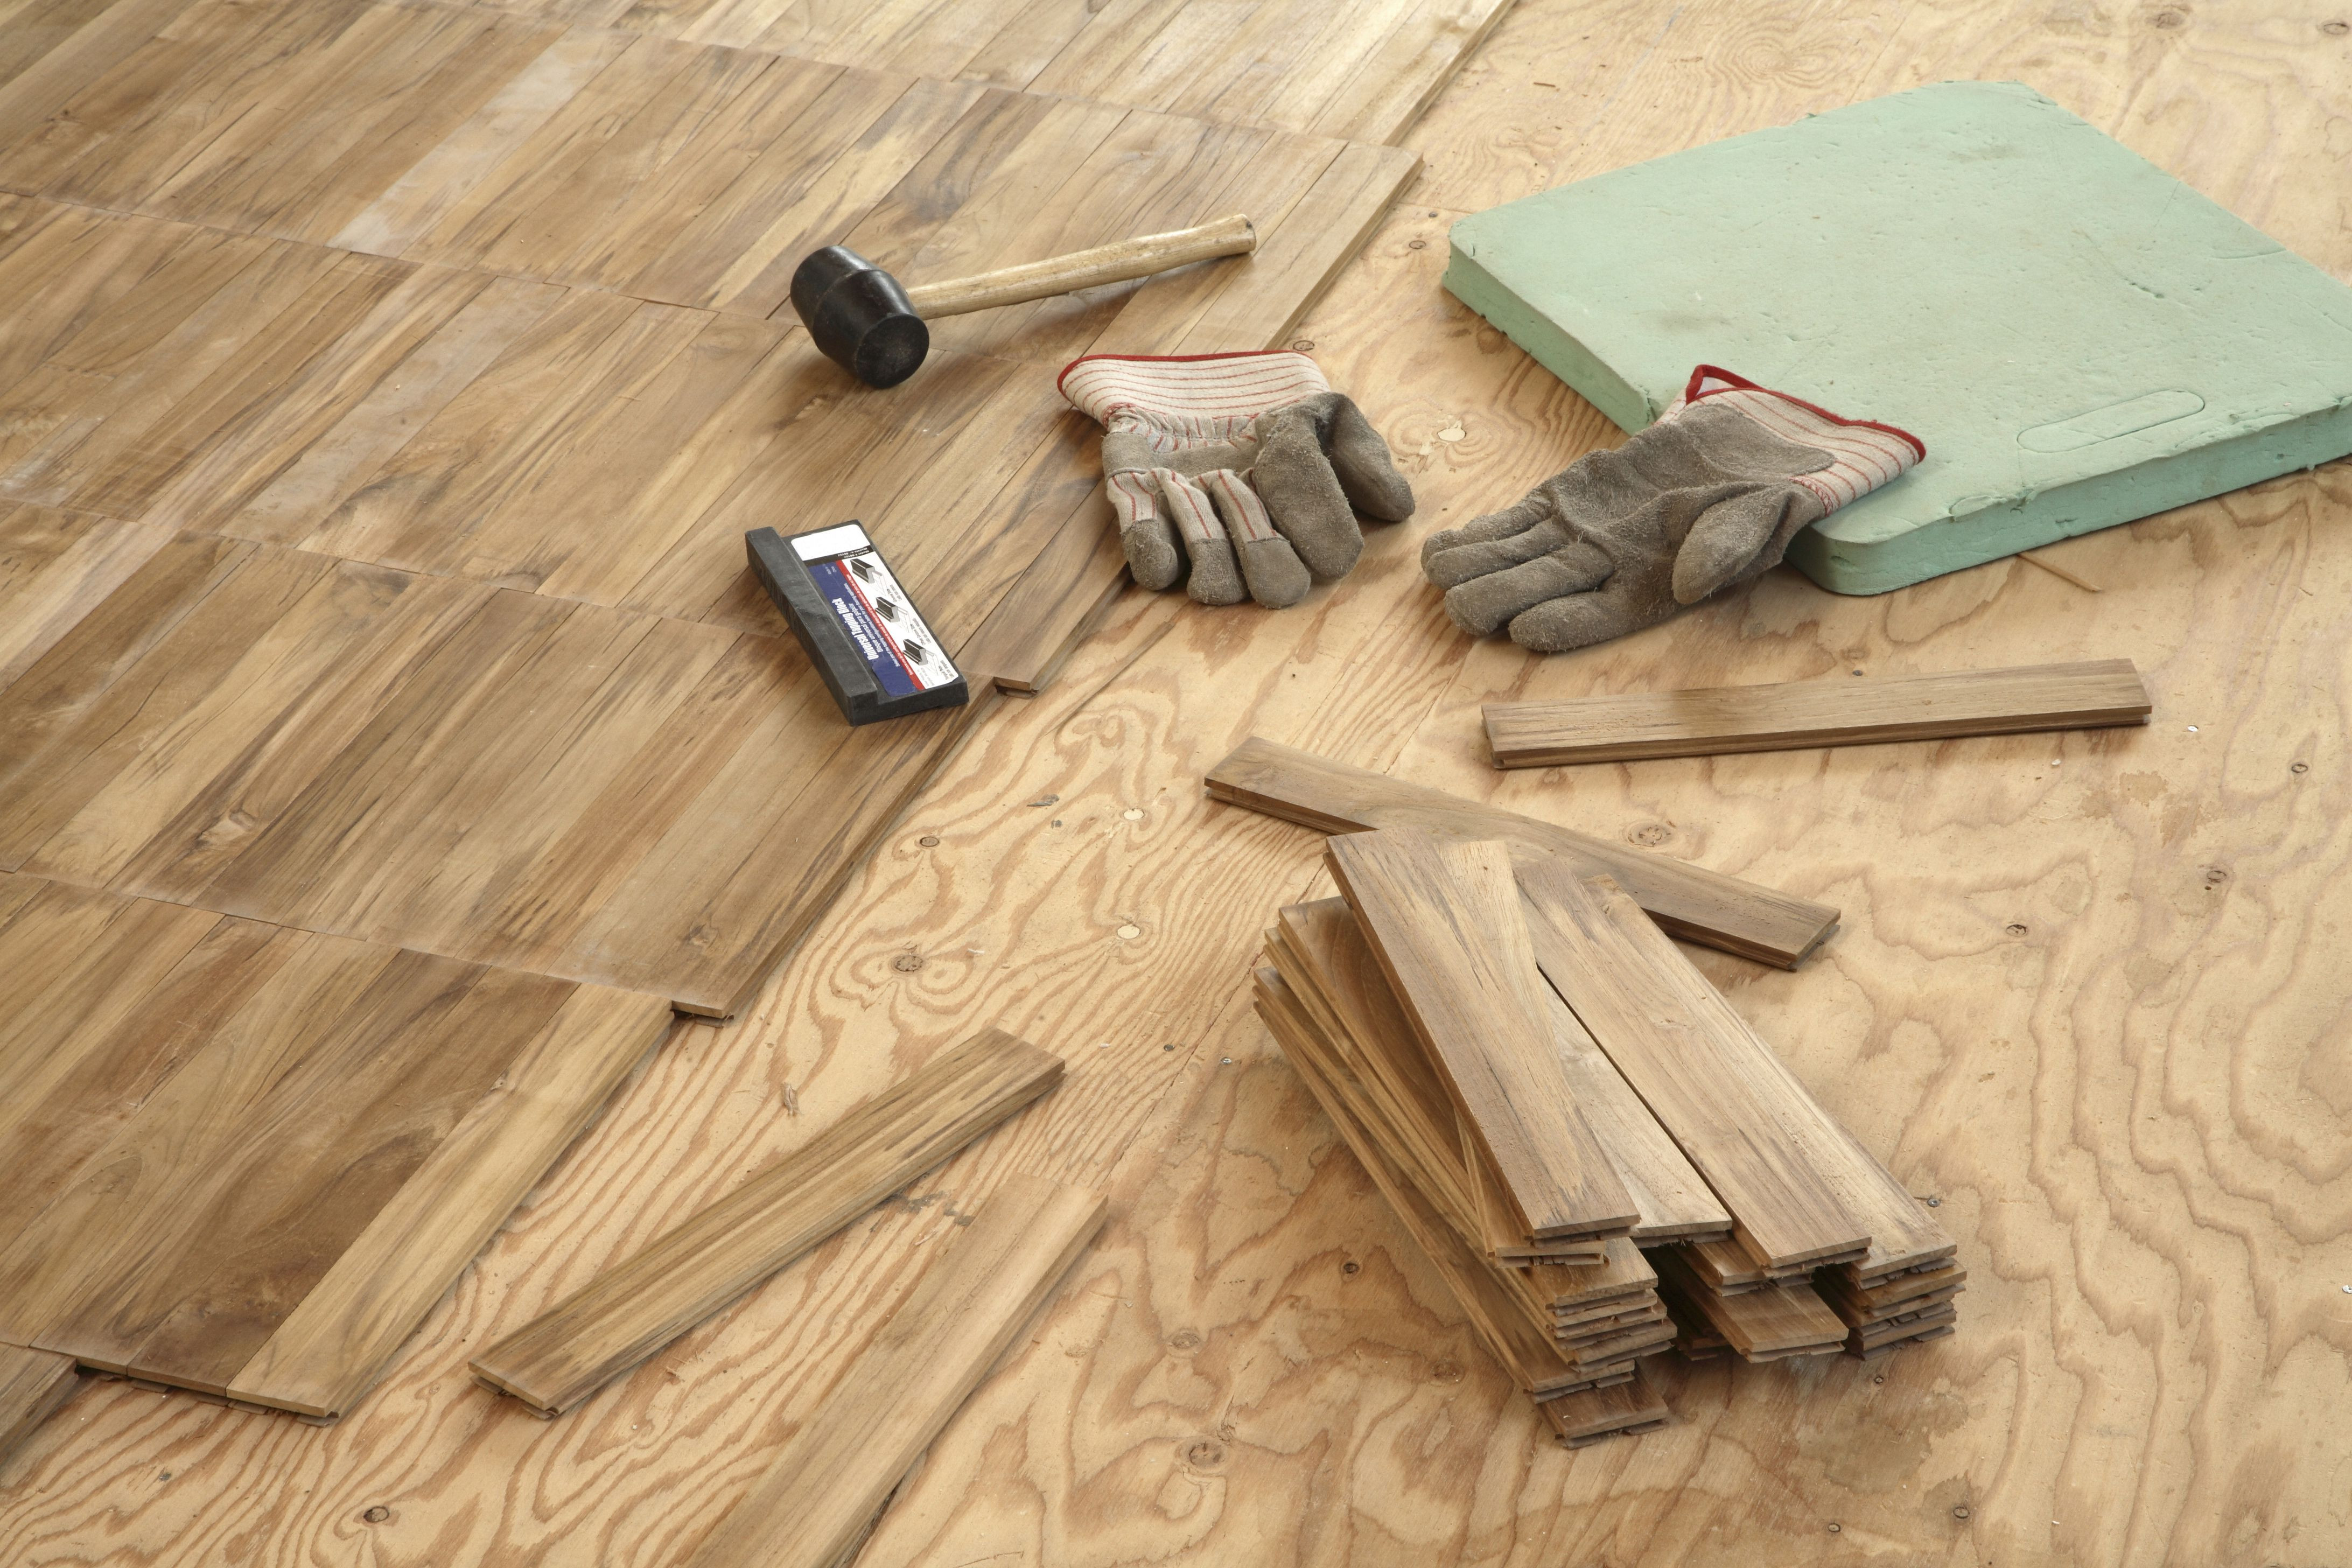 discount hardwood flooring los angeles of plywood underlayment pros and cons types and brands throughout plywoodunderlaymentunderwoodflooring 5ac24fbcae9ab8003781af25